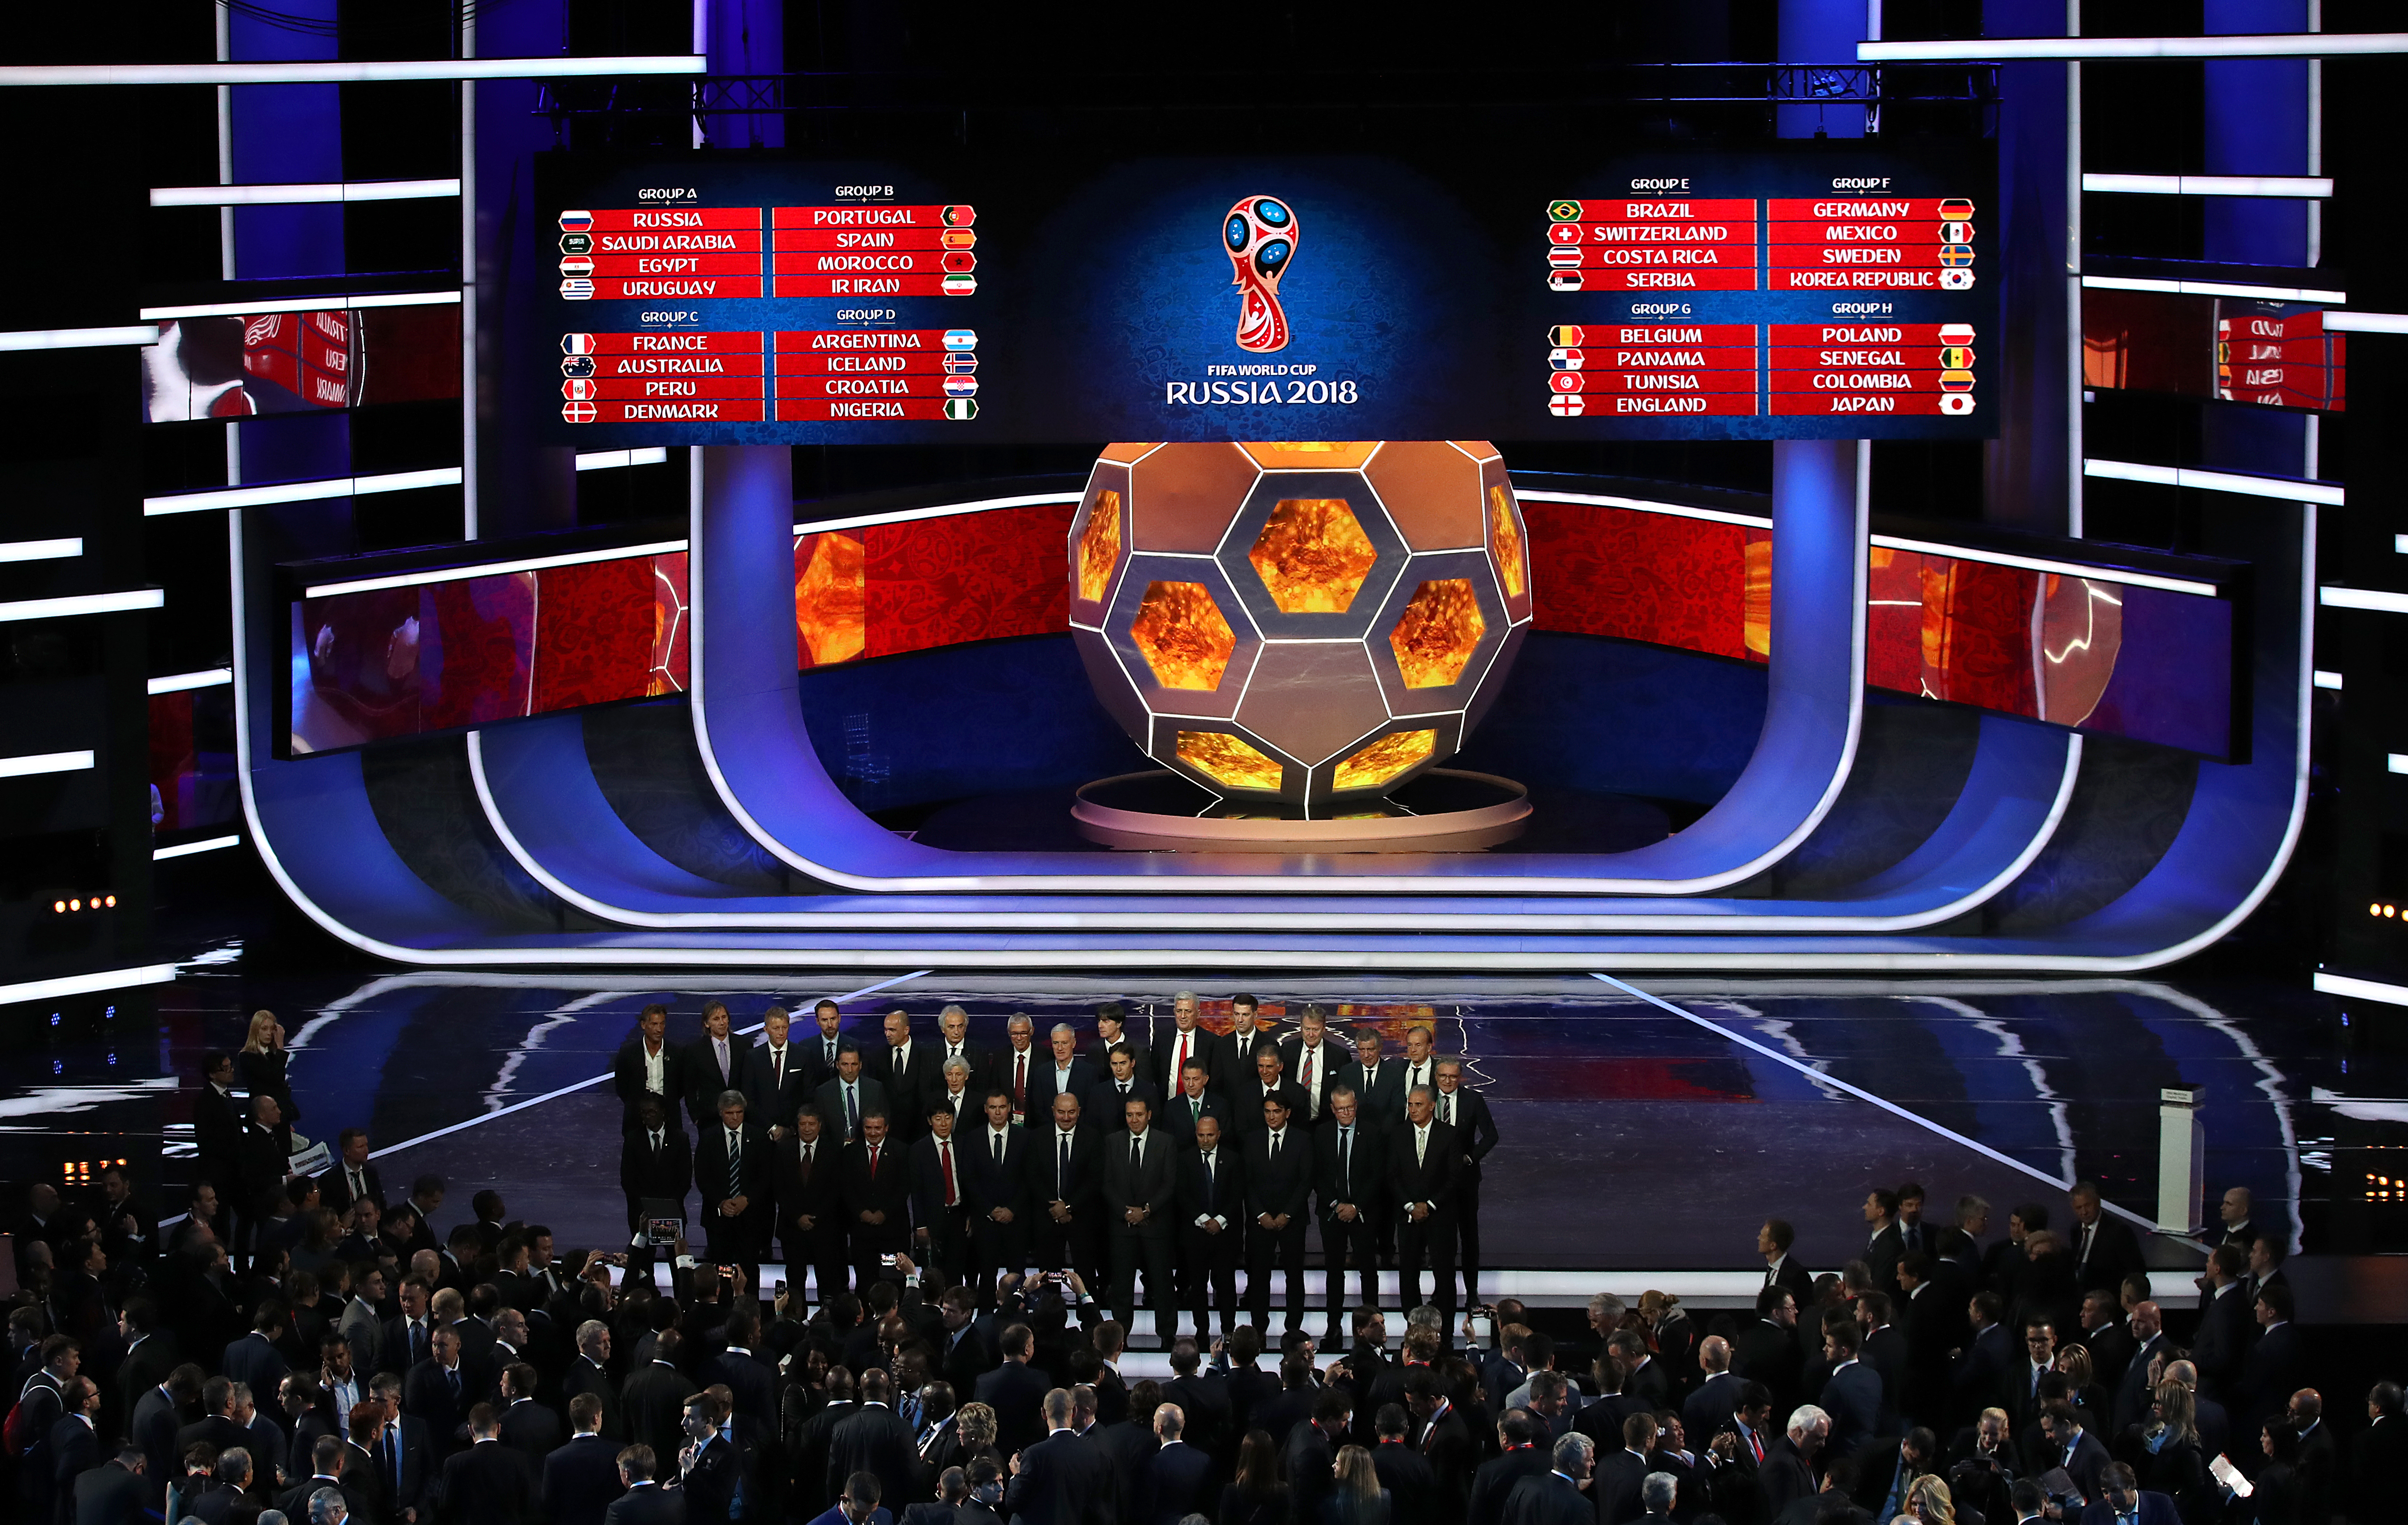 The 2018 Fifa World Cup draw